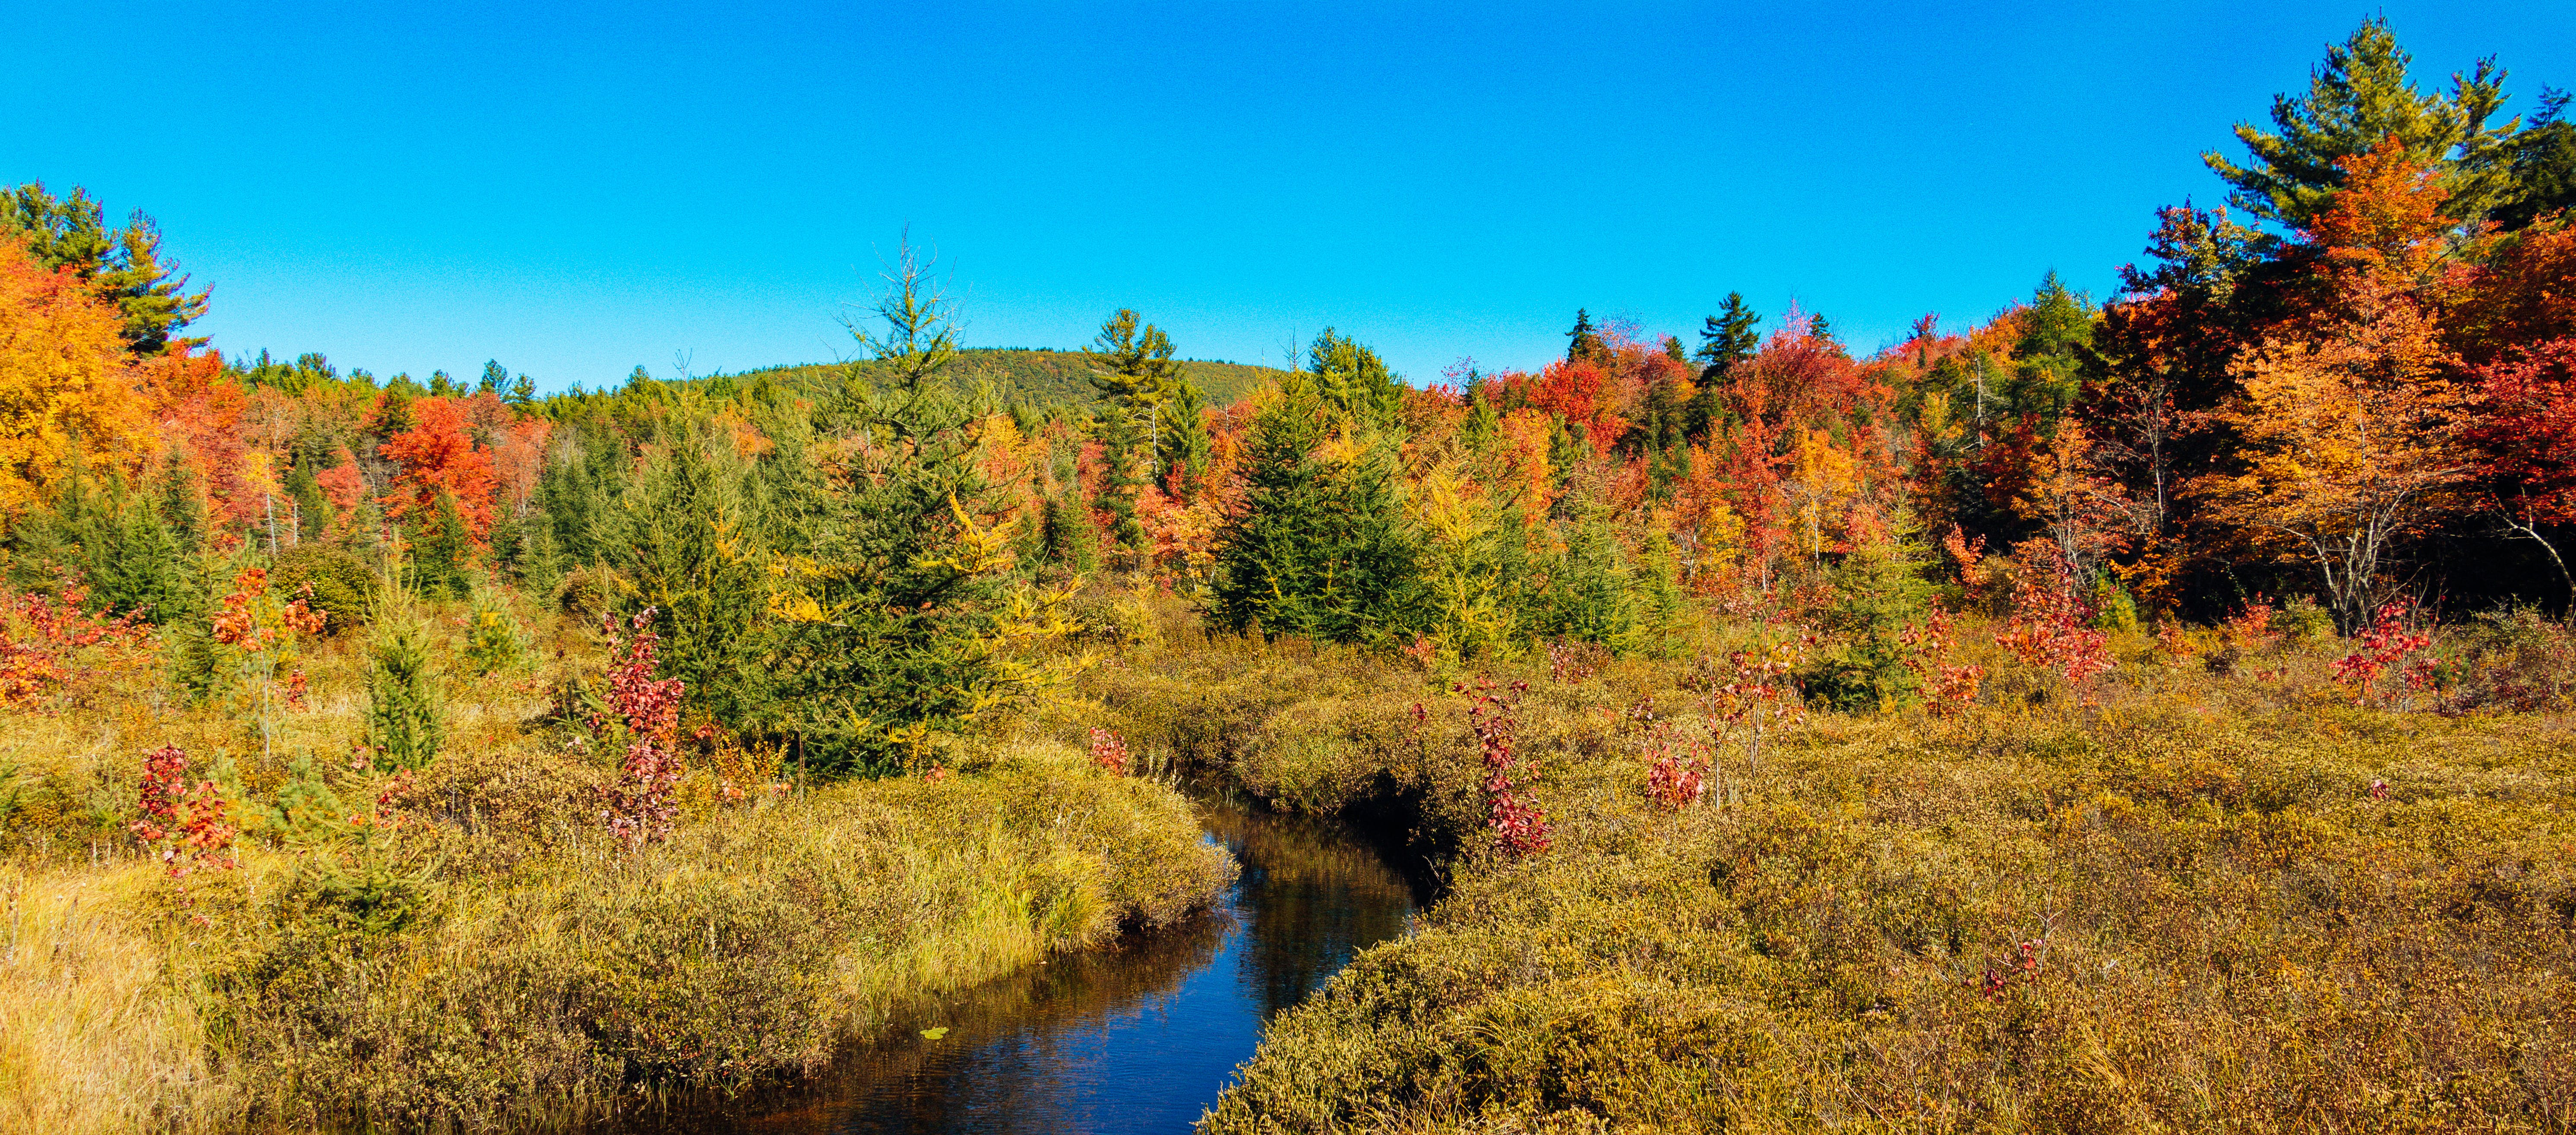 Free stock photo of autumn, colorful, colors, fall